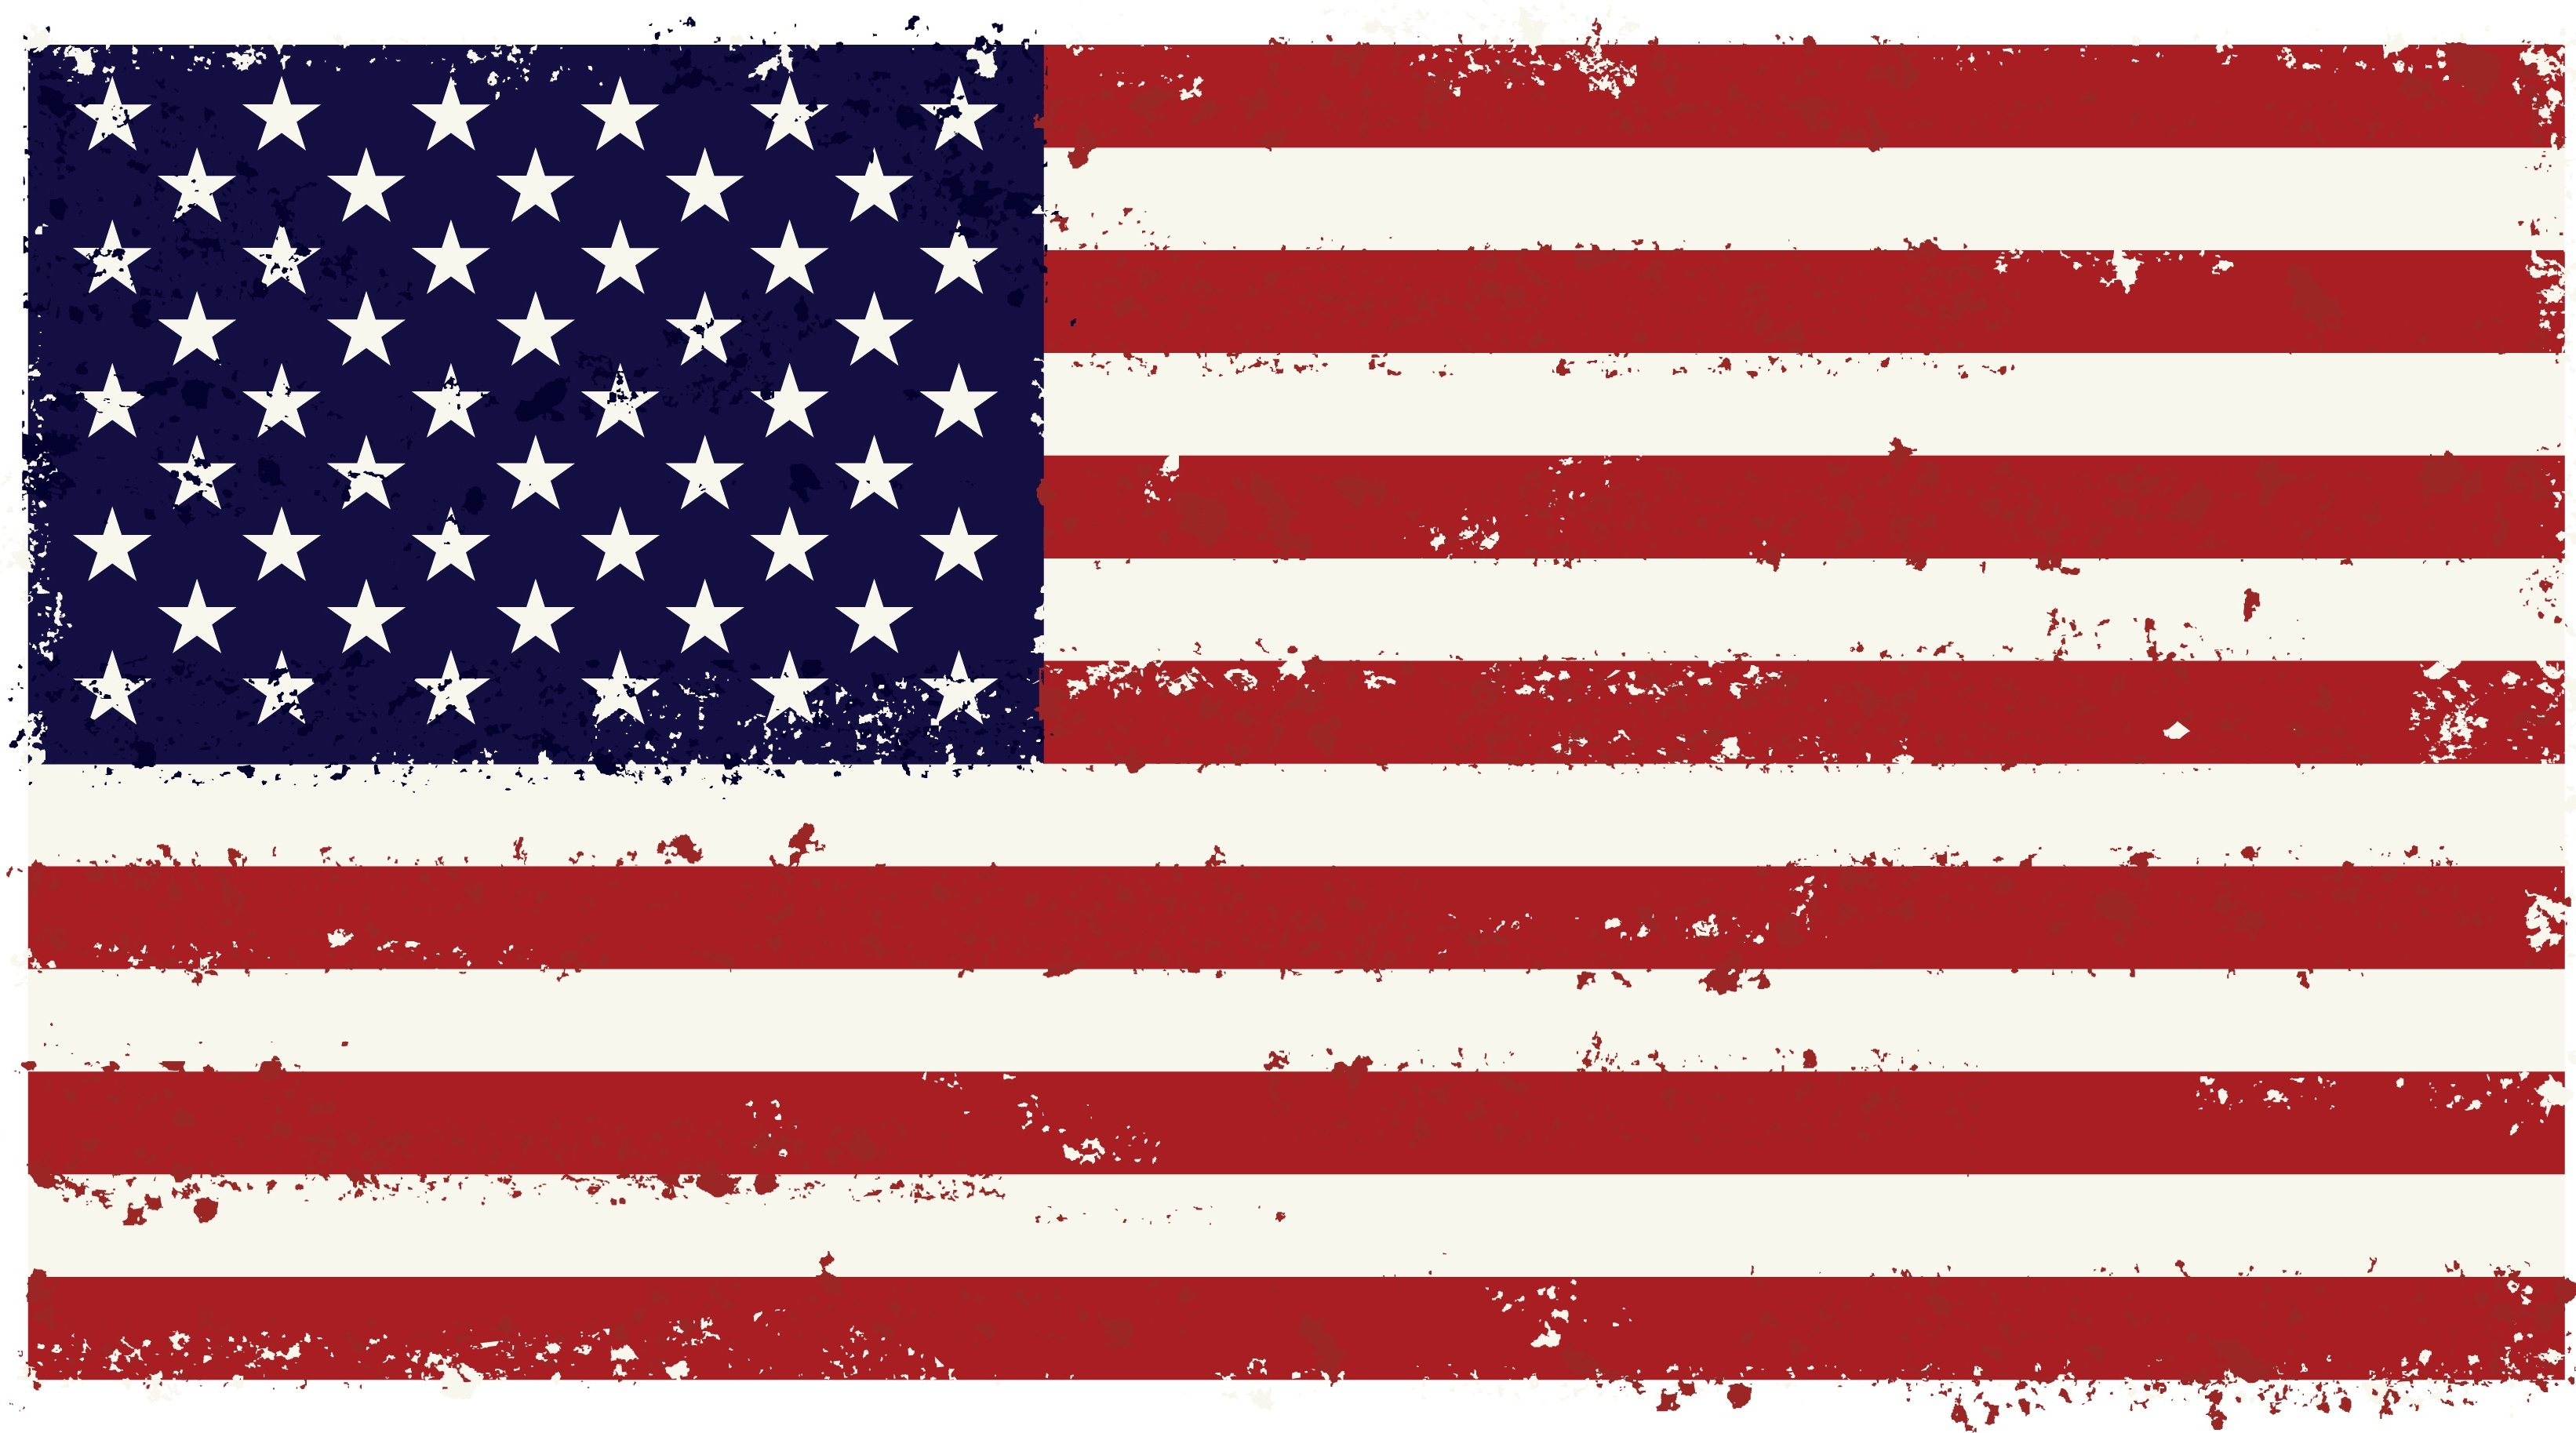 Tattered us flag clipart jpg freeuse Tattered us flag clipart - ClipartFest jpg freeuse